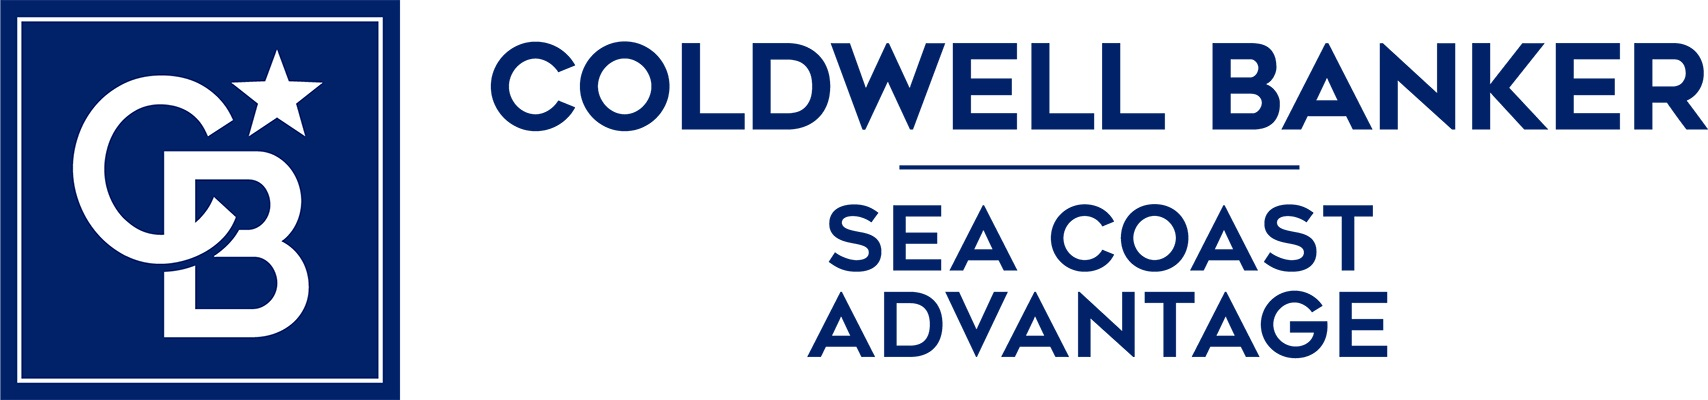 Renee Brandon - Coldwell Banker Sea Coast Advantage Realty Logo